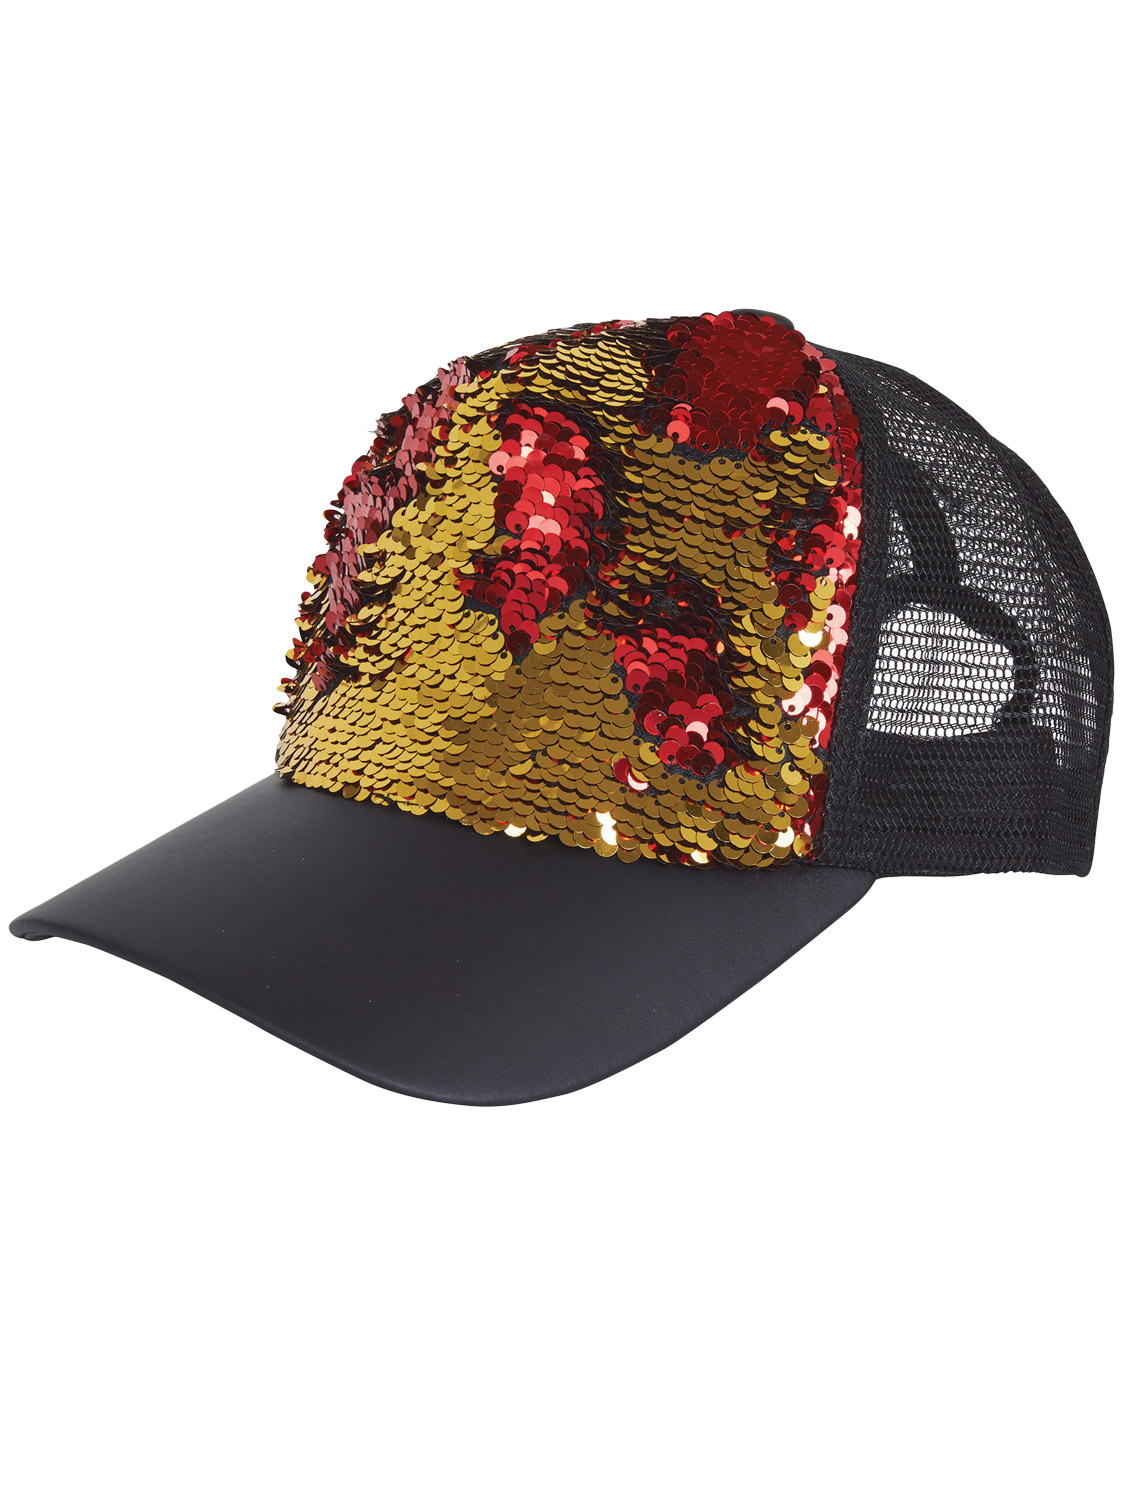 a2090ae5d Adult's Reversible Sequin Cap - Gold & Red | All Accessories | Fancy ...